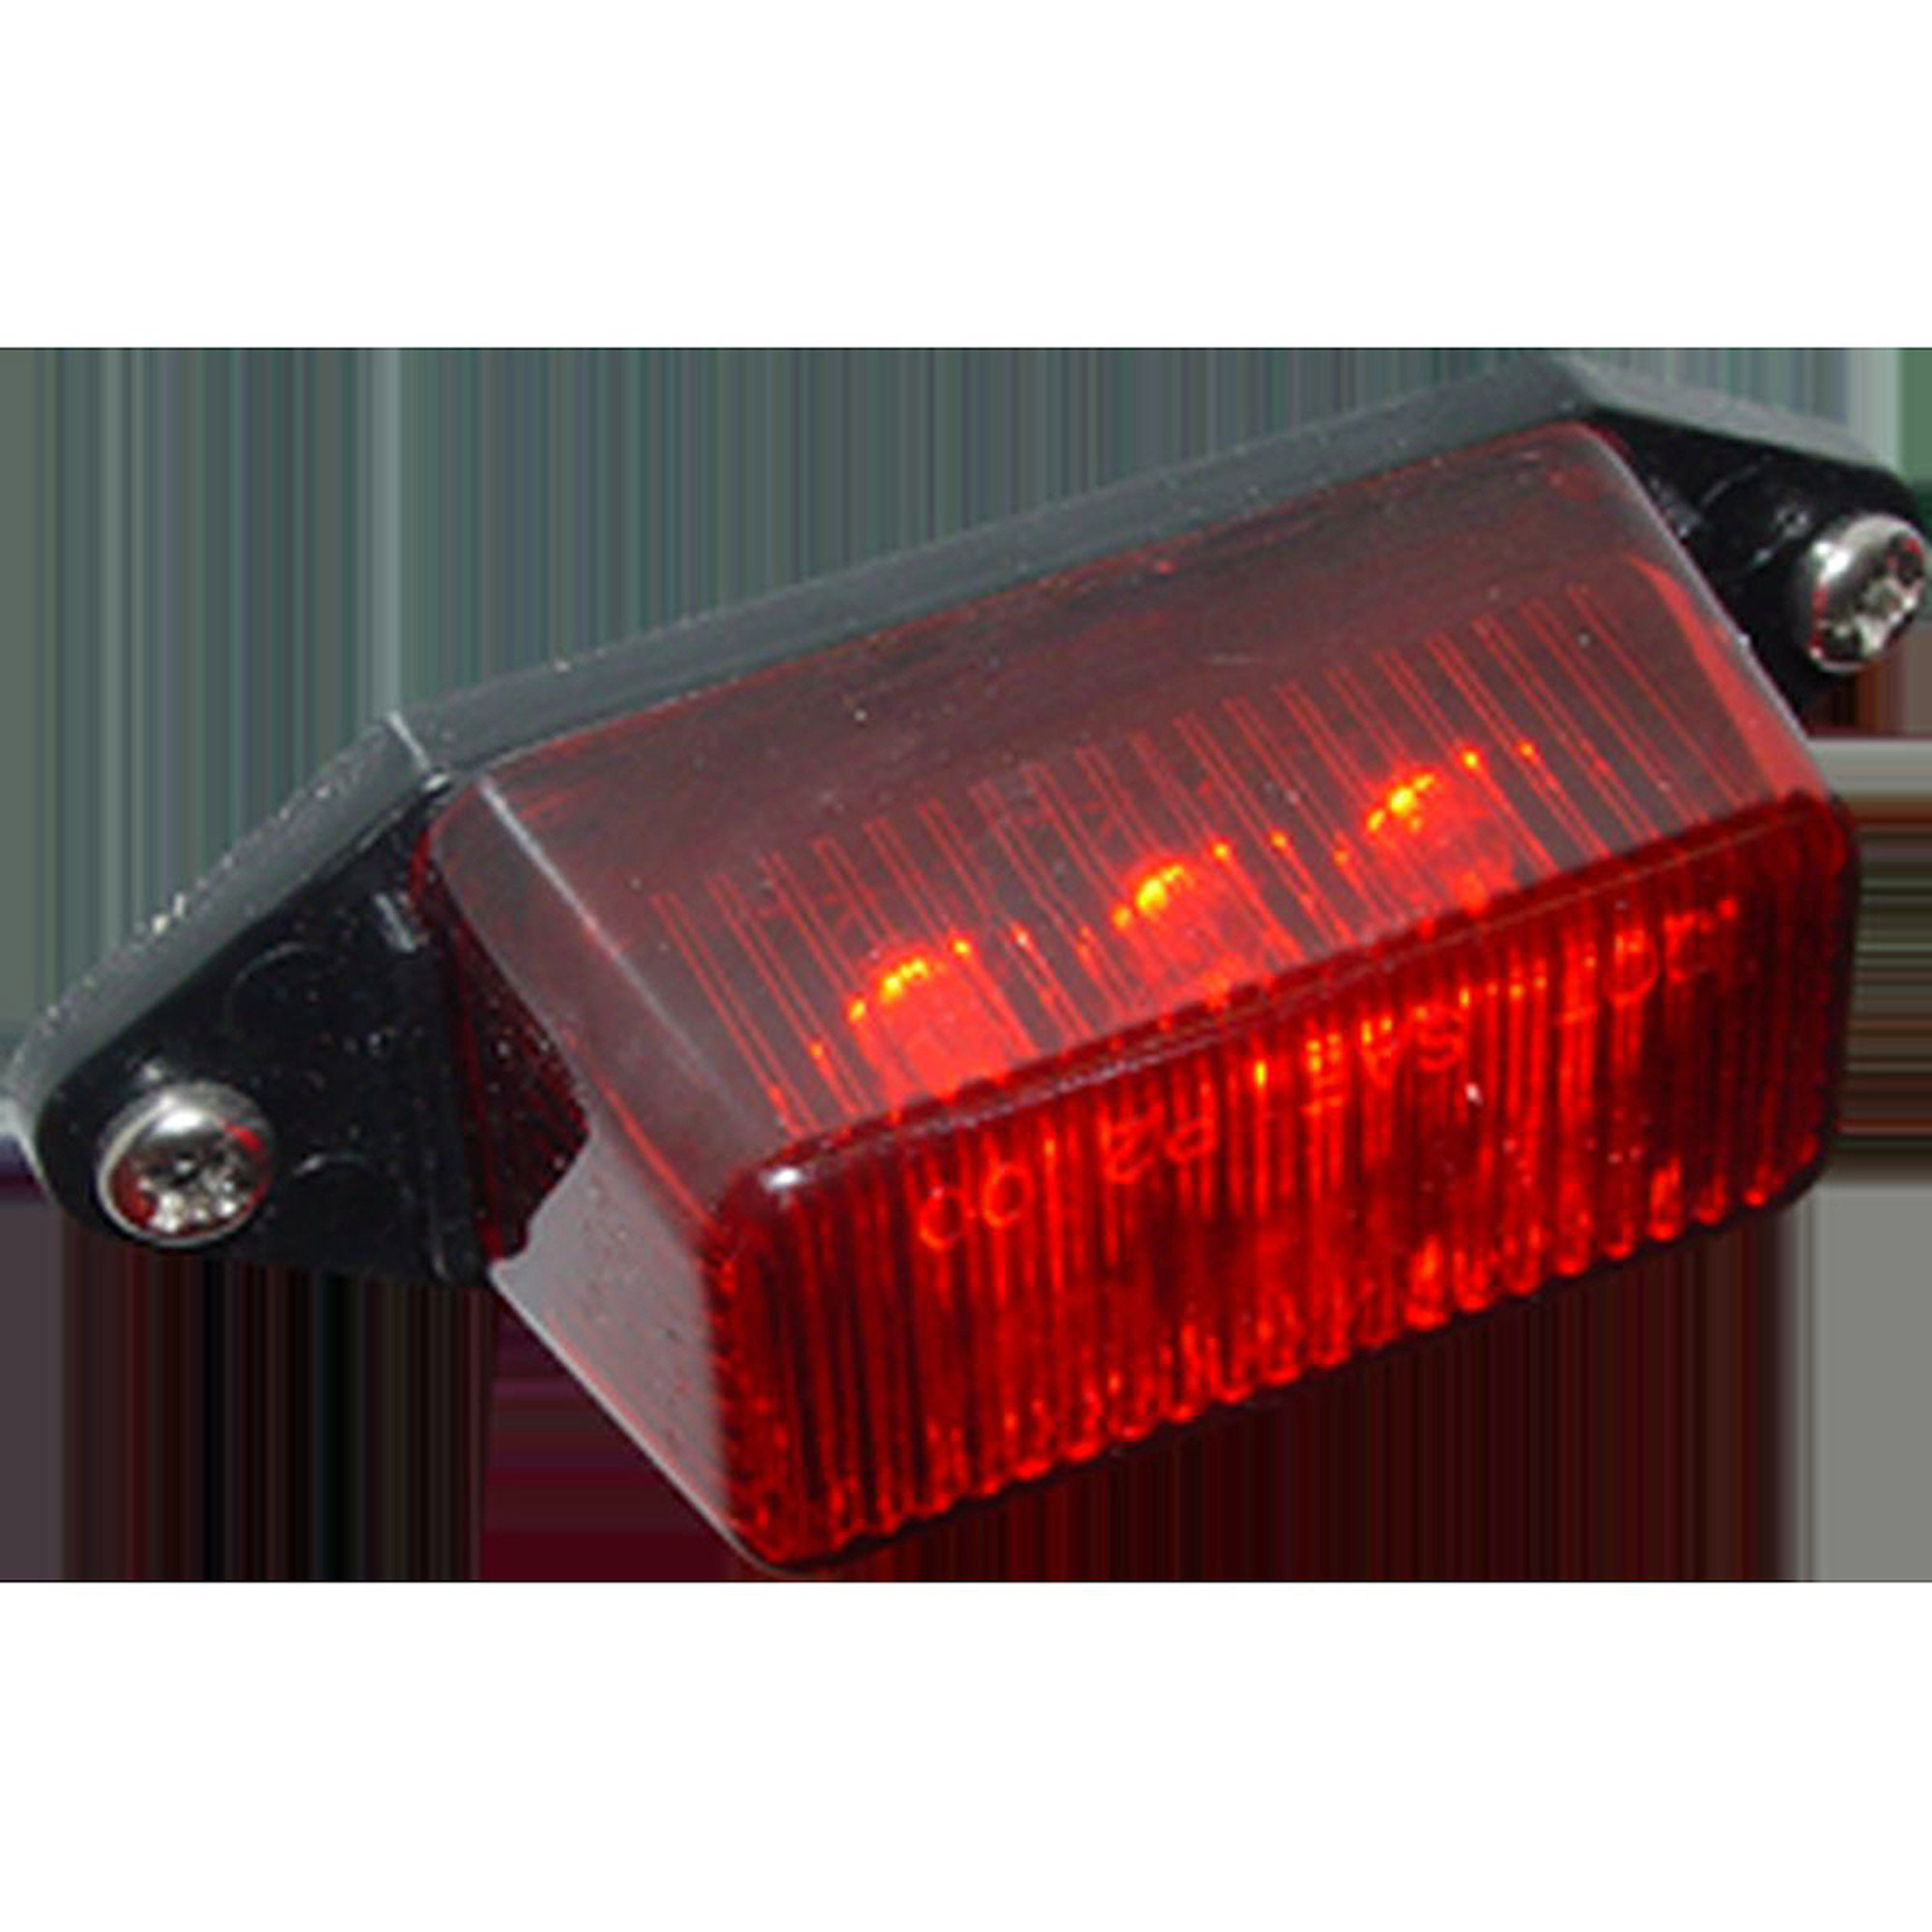 SeaSense LED Clearance Lights, 6 1/2 Pigtail 6 1/2 Pigtail 50080279 Red